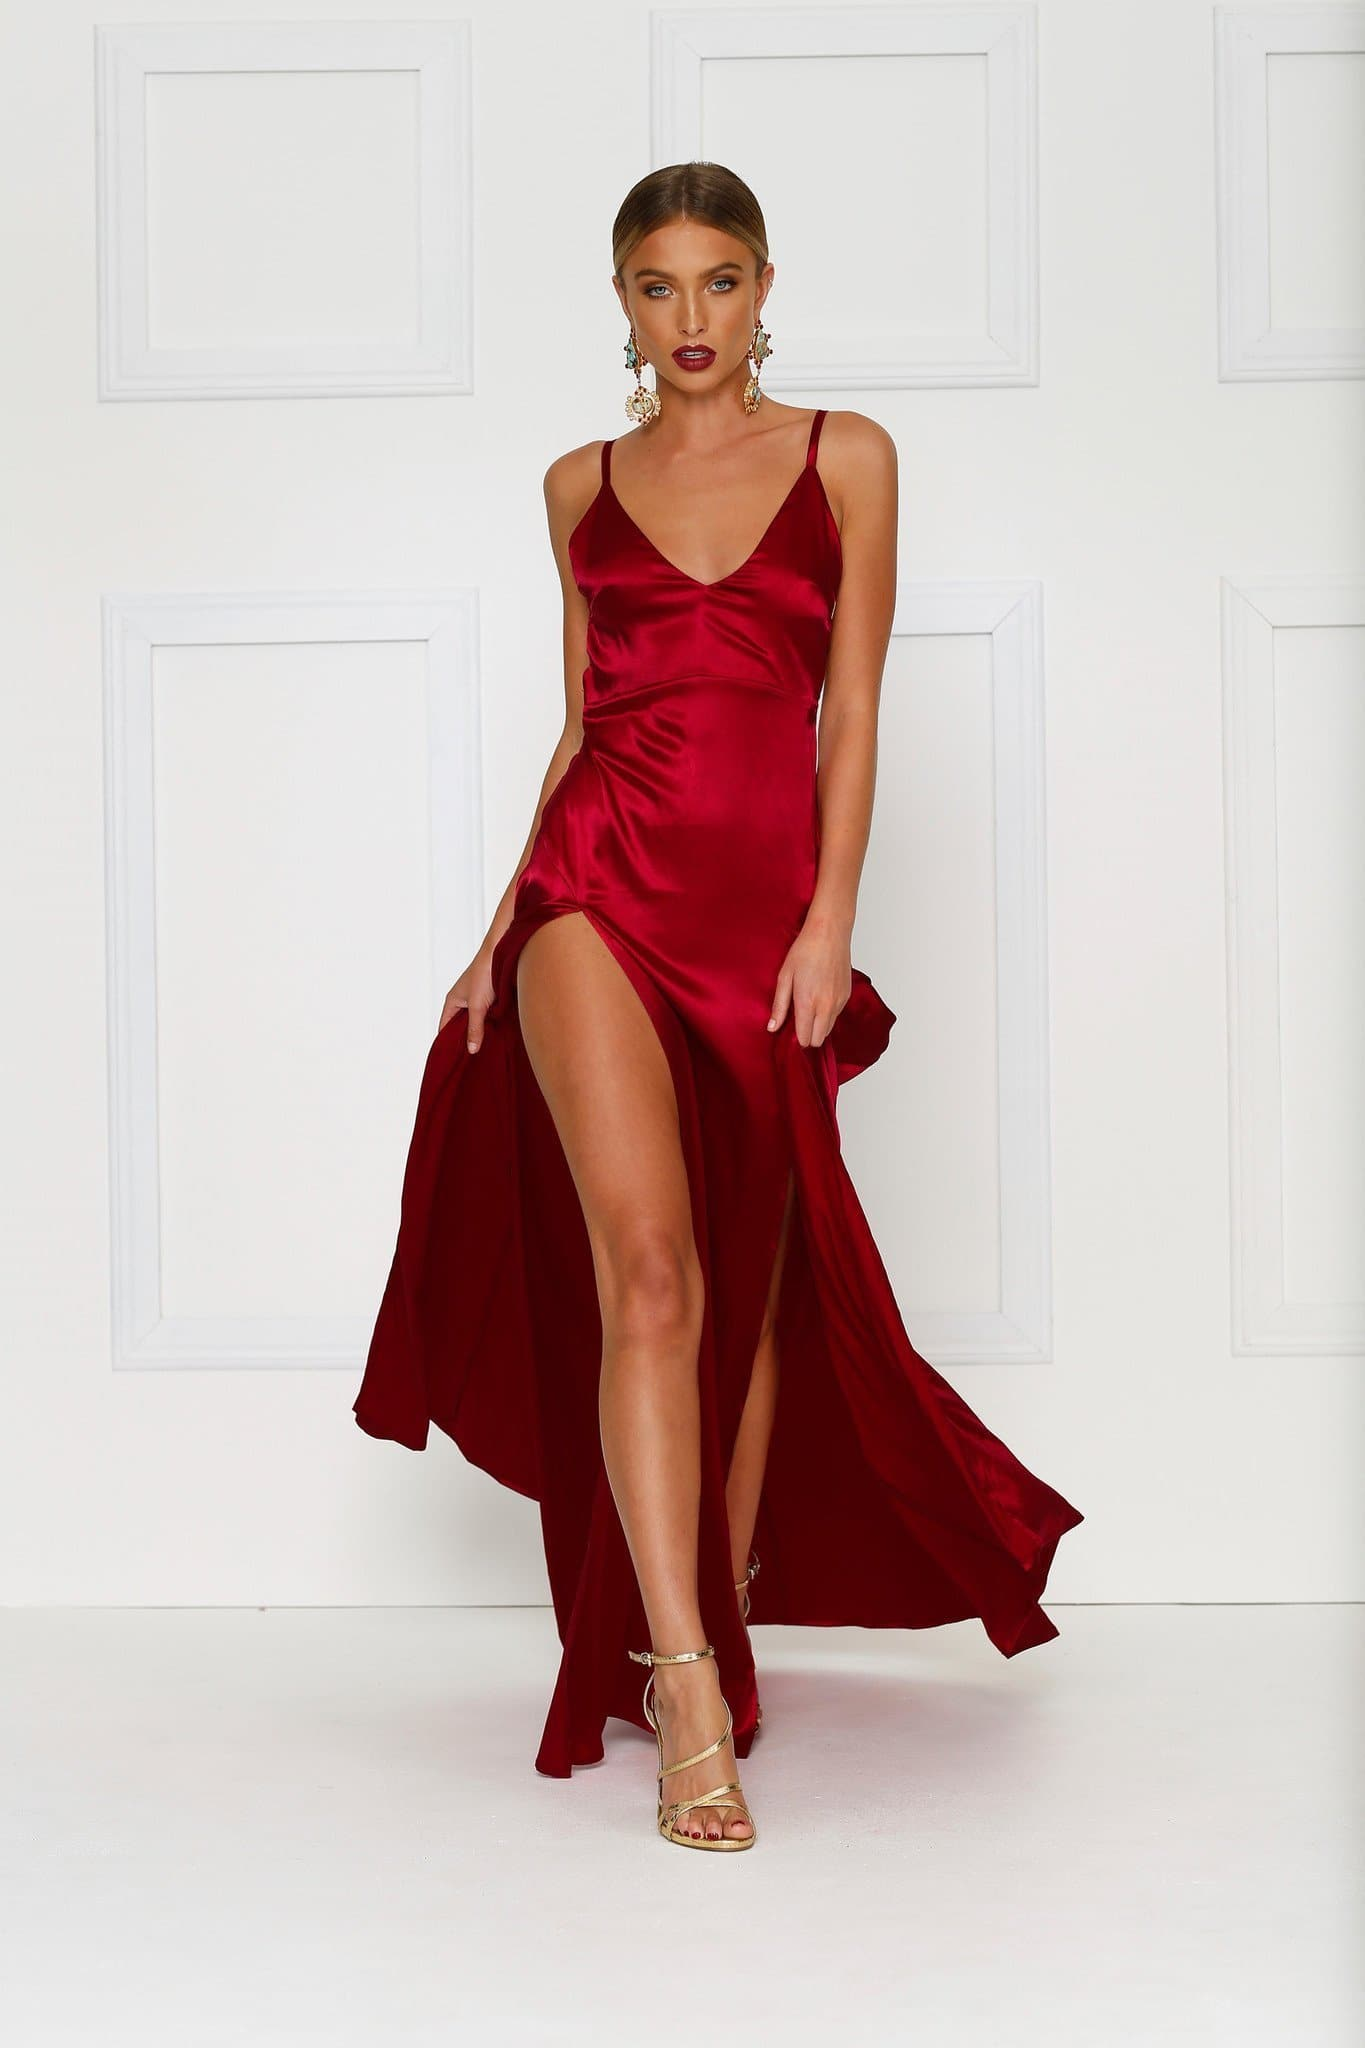 Alexis Wine Red Satin Gown With V Neckline Amp Thigh High